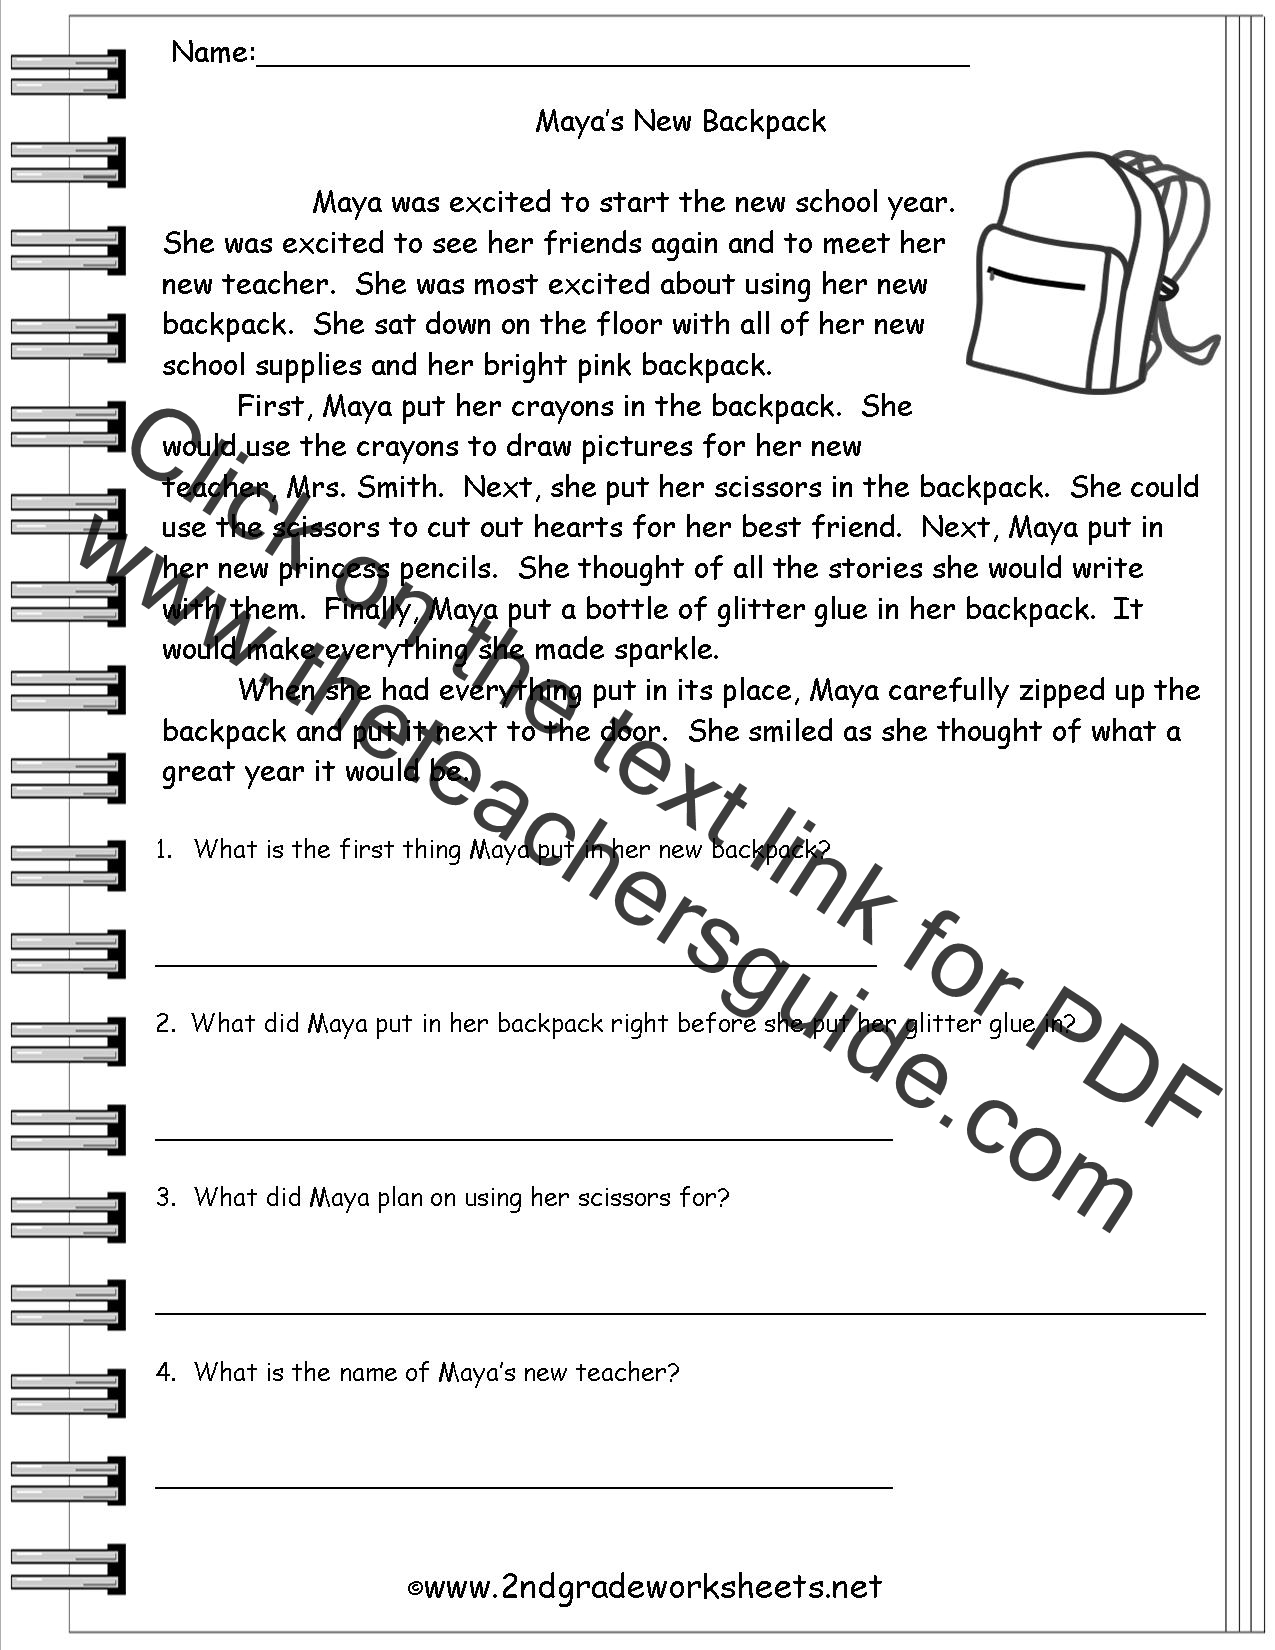 Worksheet Grade 3 Reading reading comprehension grade 3 download pdf printable worksheets 4